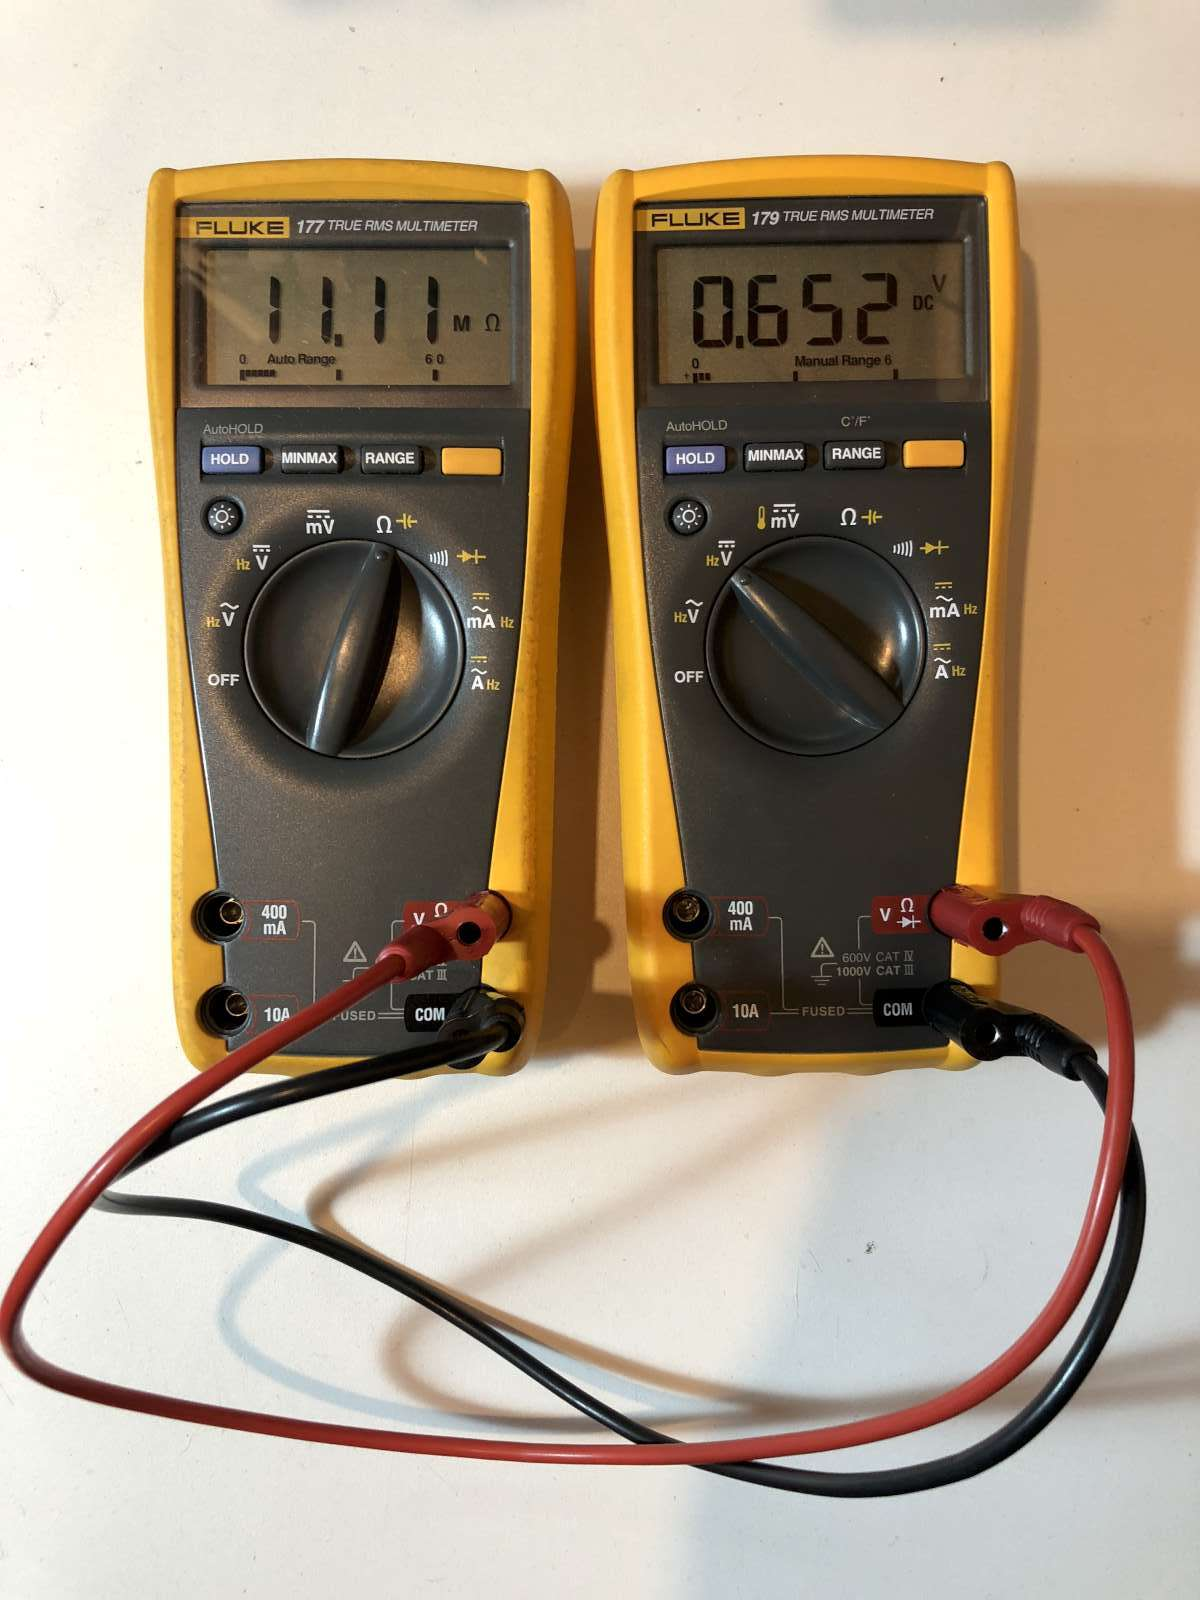 Measuring gigaohms with a simple multimeter